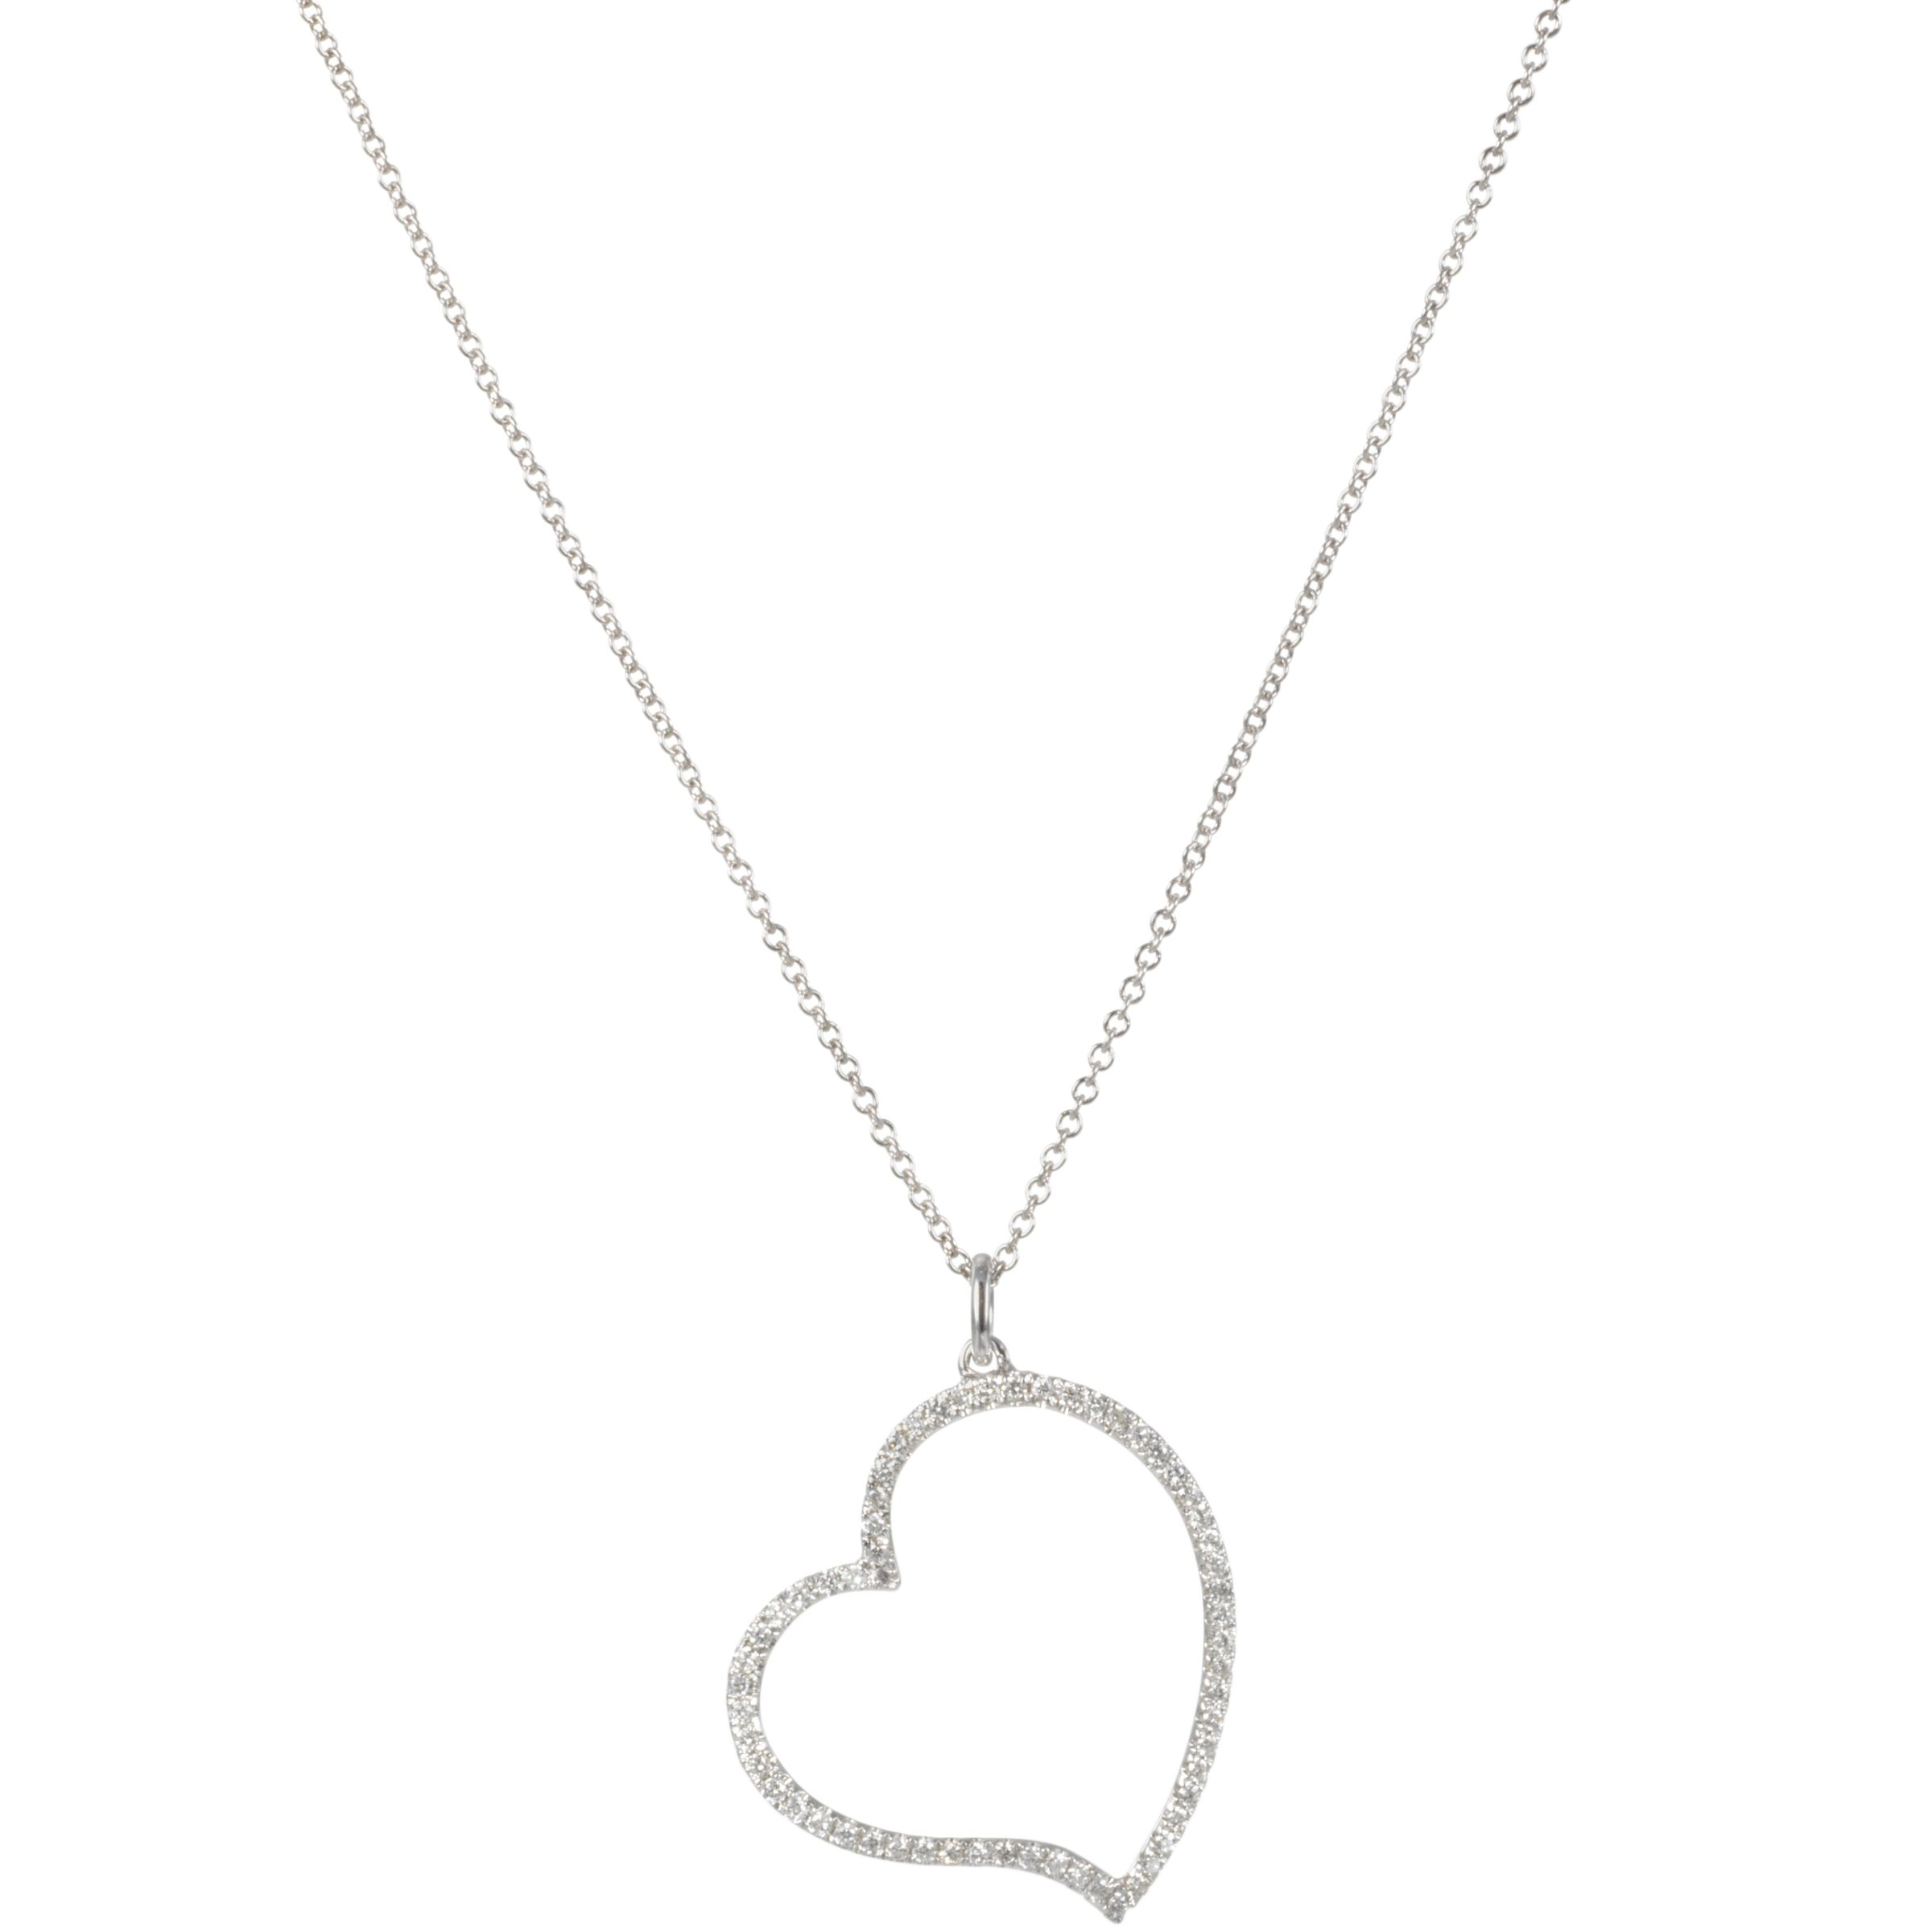 London Road 18ct White Gold Diamond Heart Pendant Necklace